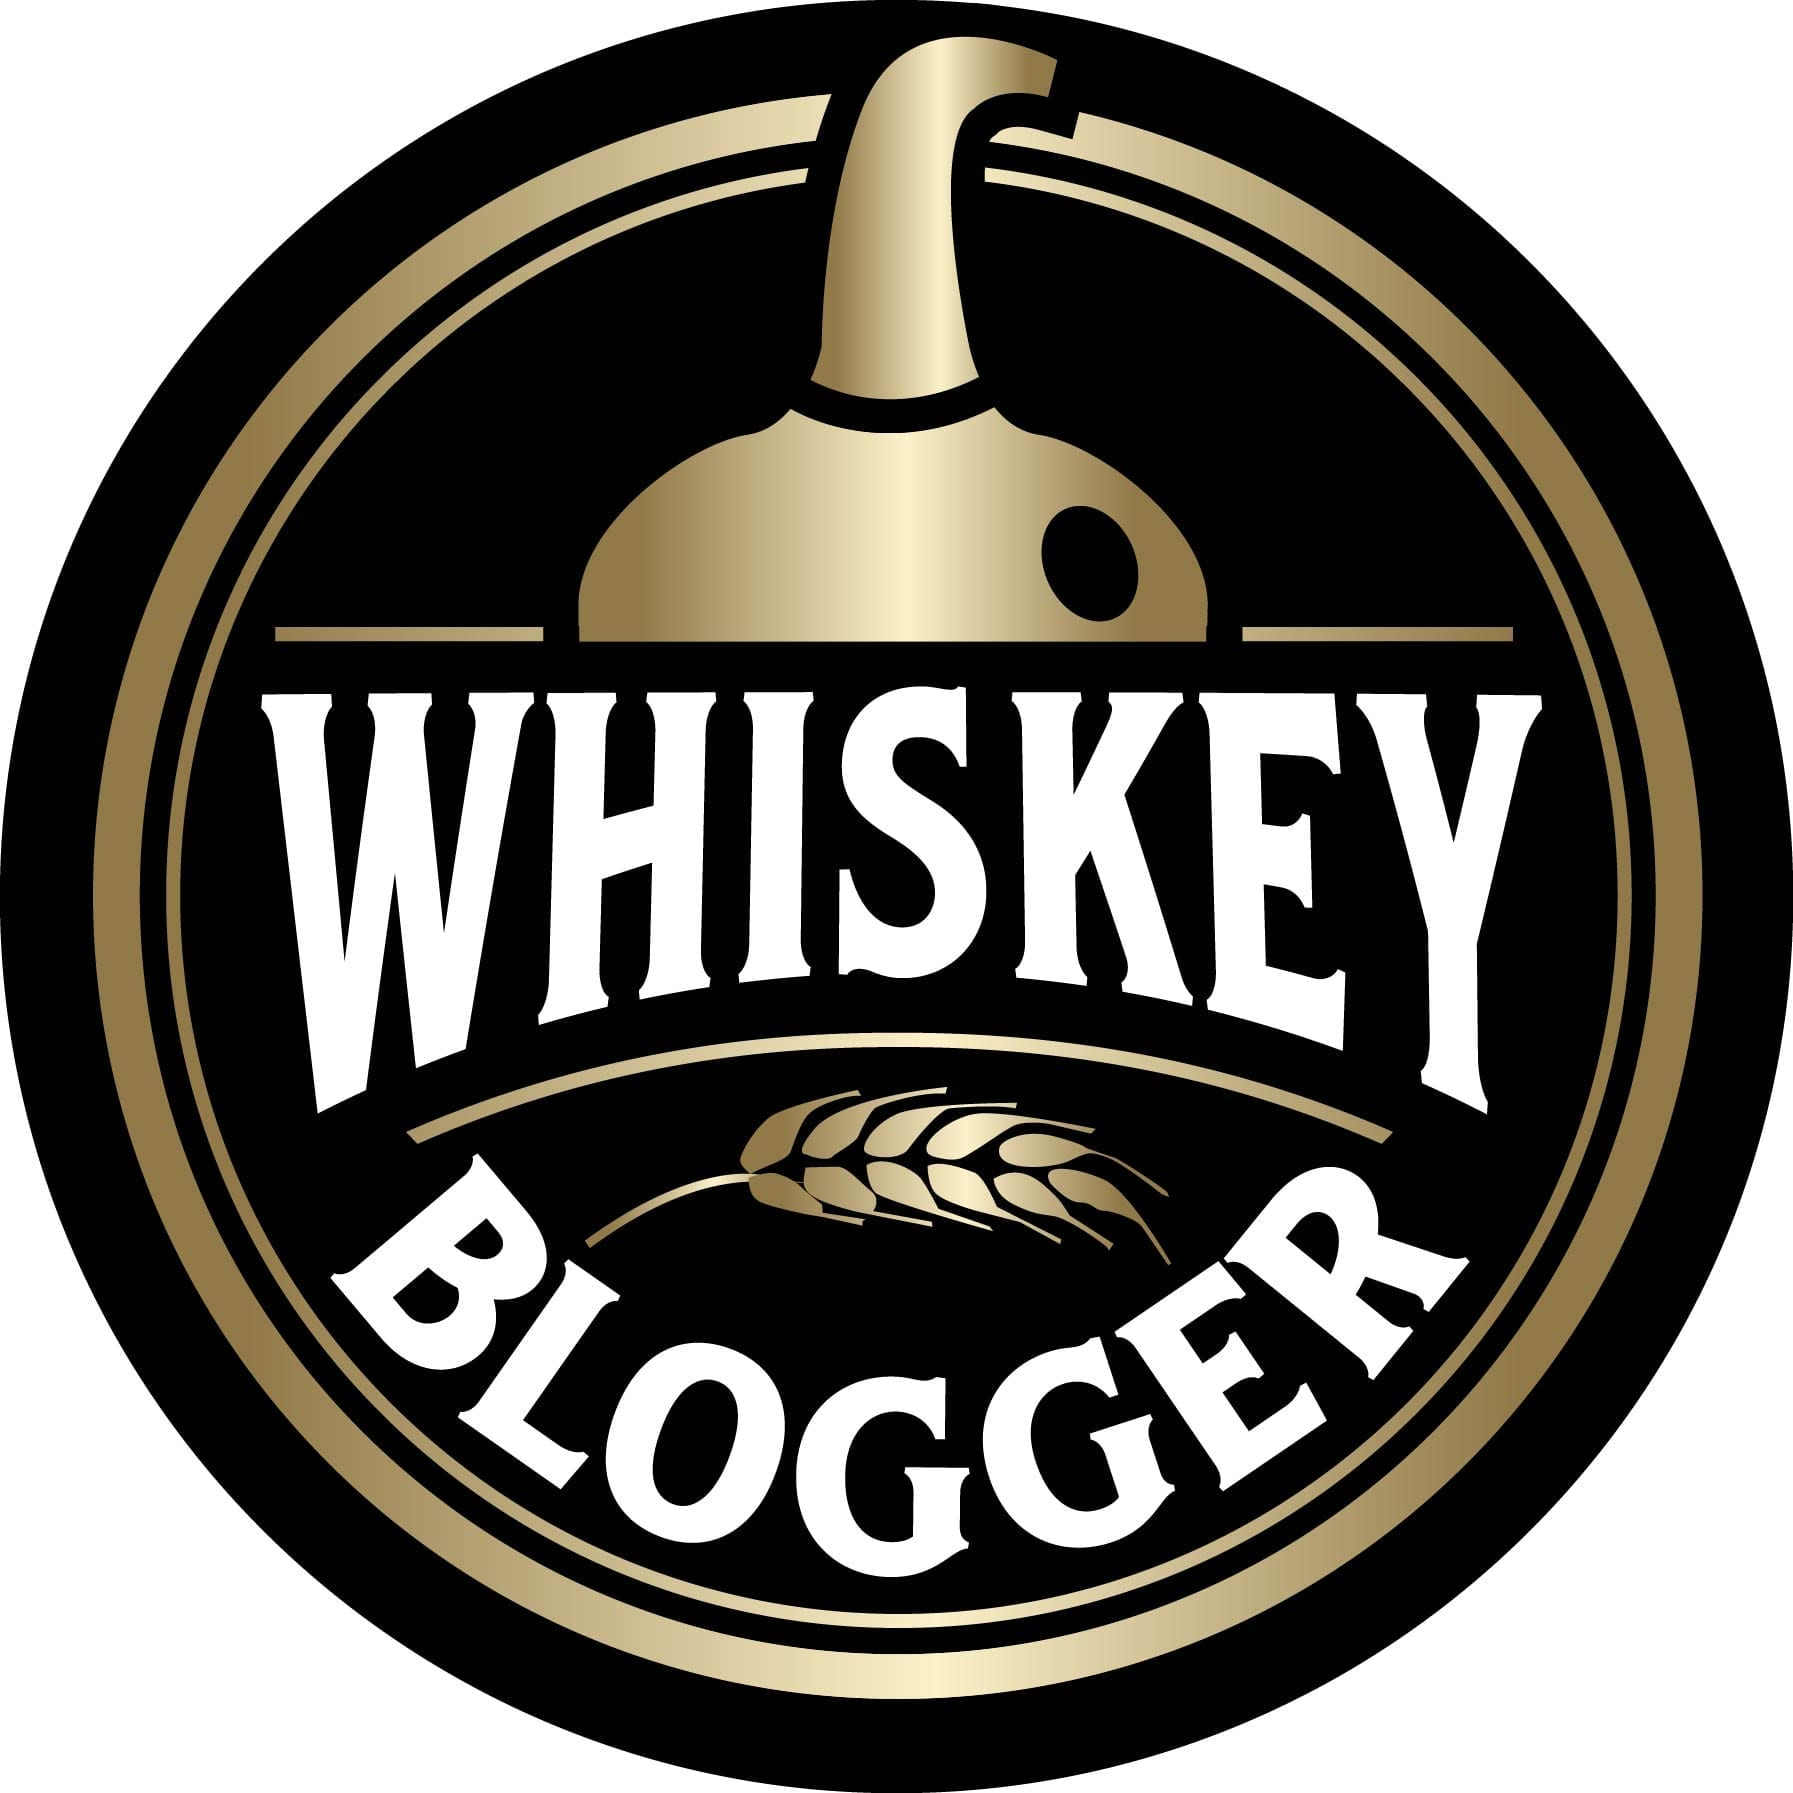 @WhiskeyBlogger